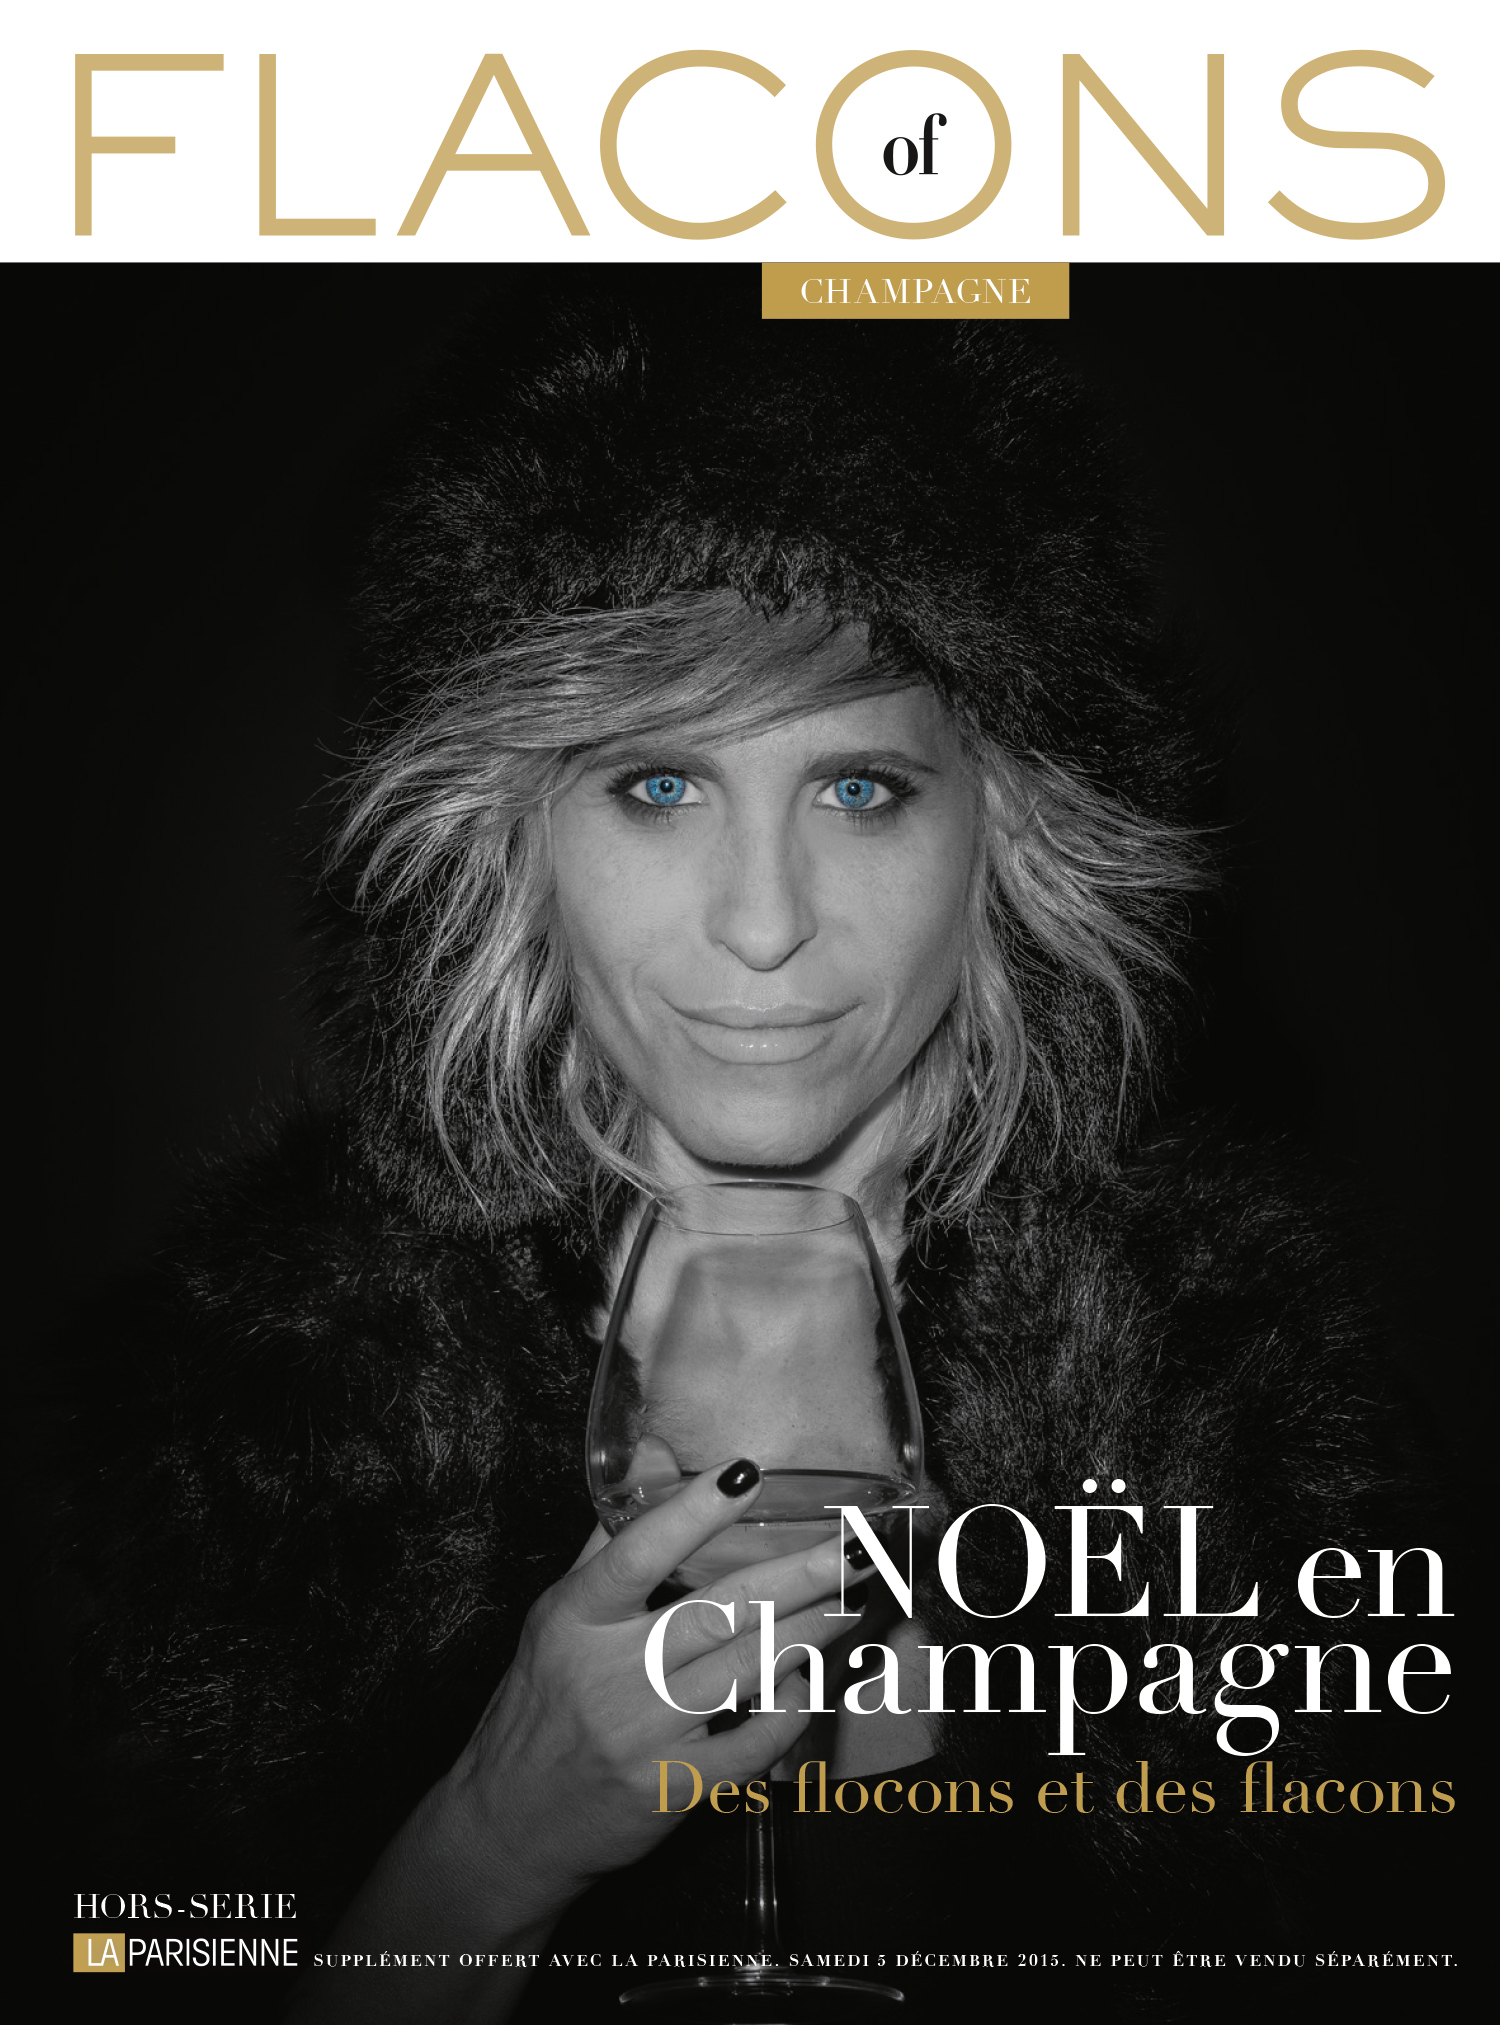 Flacons of Champagne 1